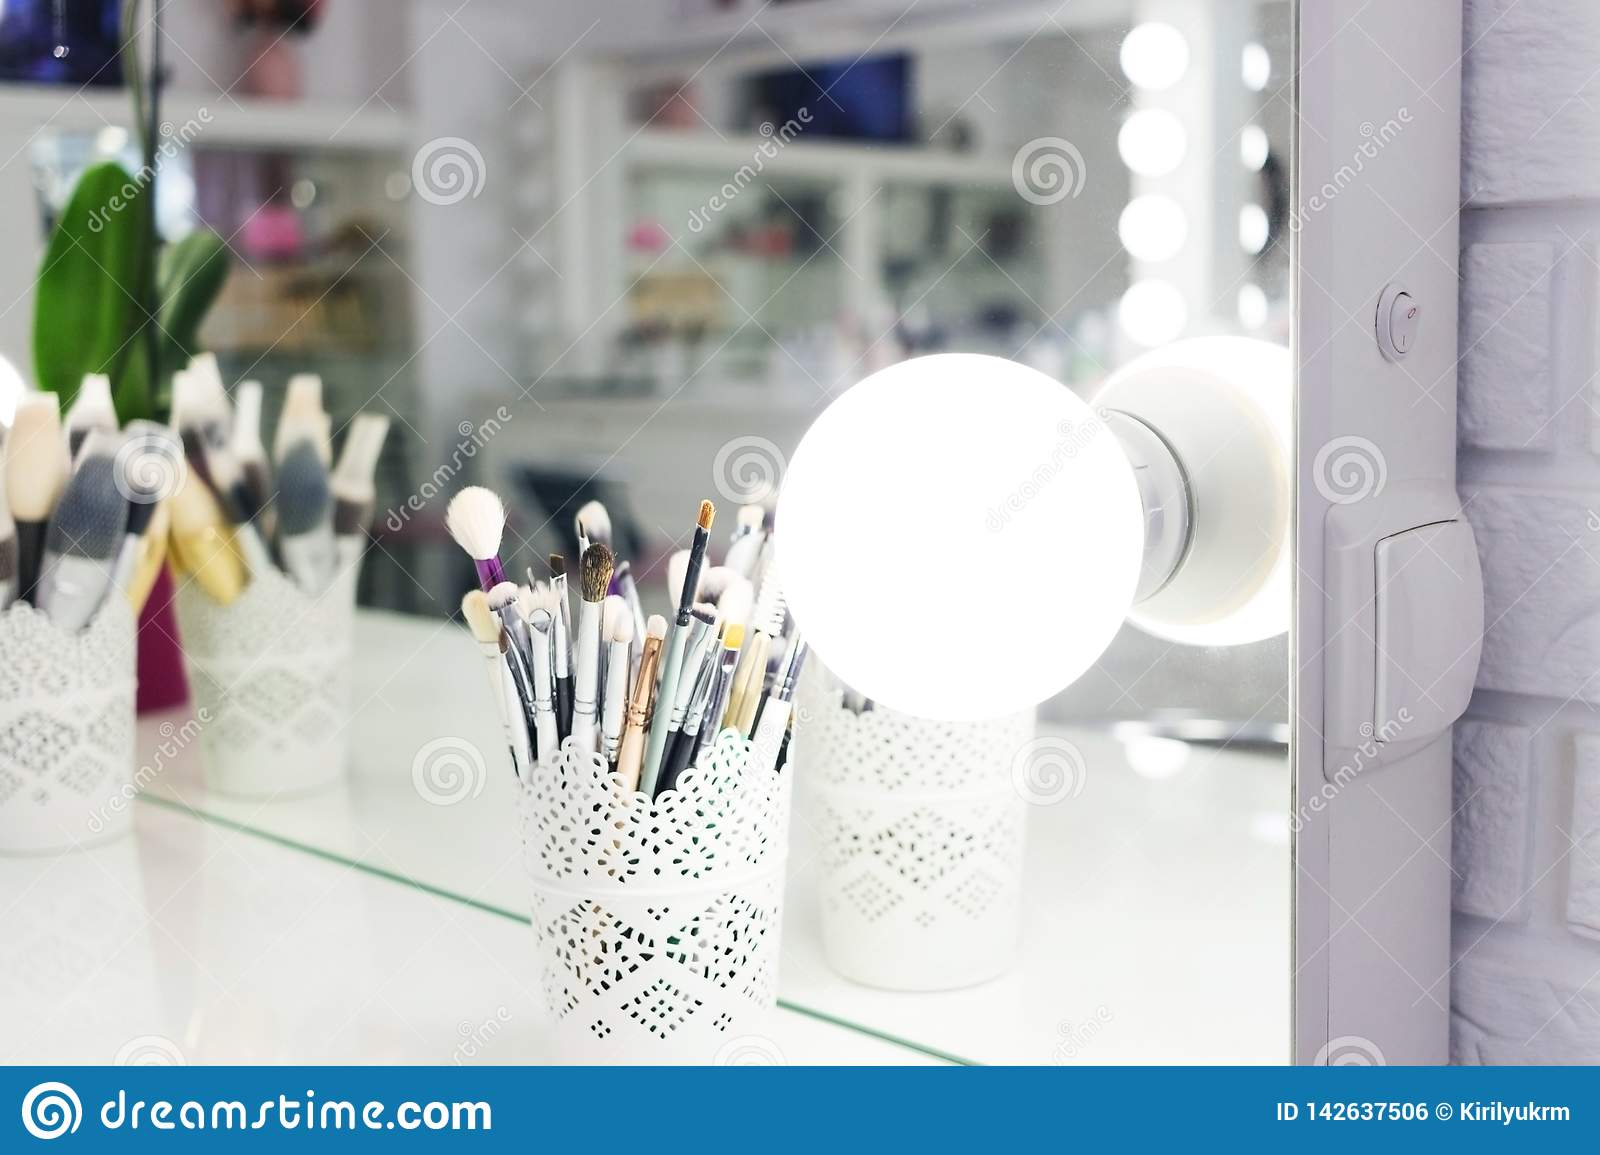 Interior Of A Beauty Salon Room With Makeup Mirror Lights And Black Chair Stock Photo Image Of Room Bulb 142637506